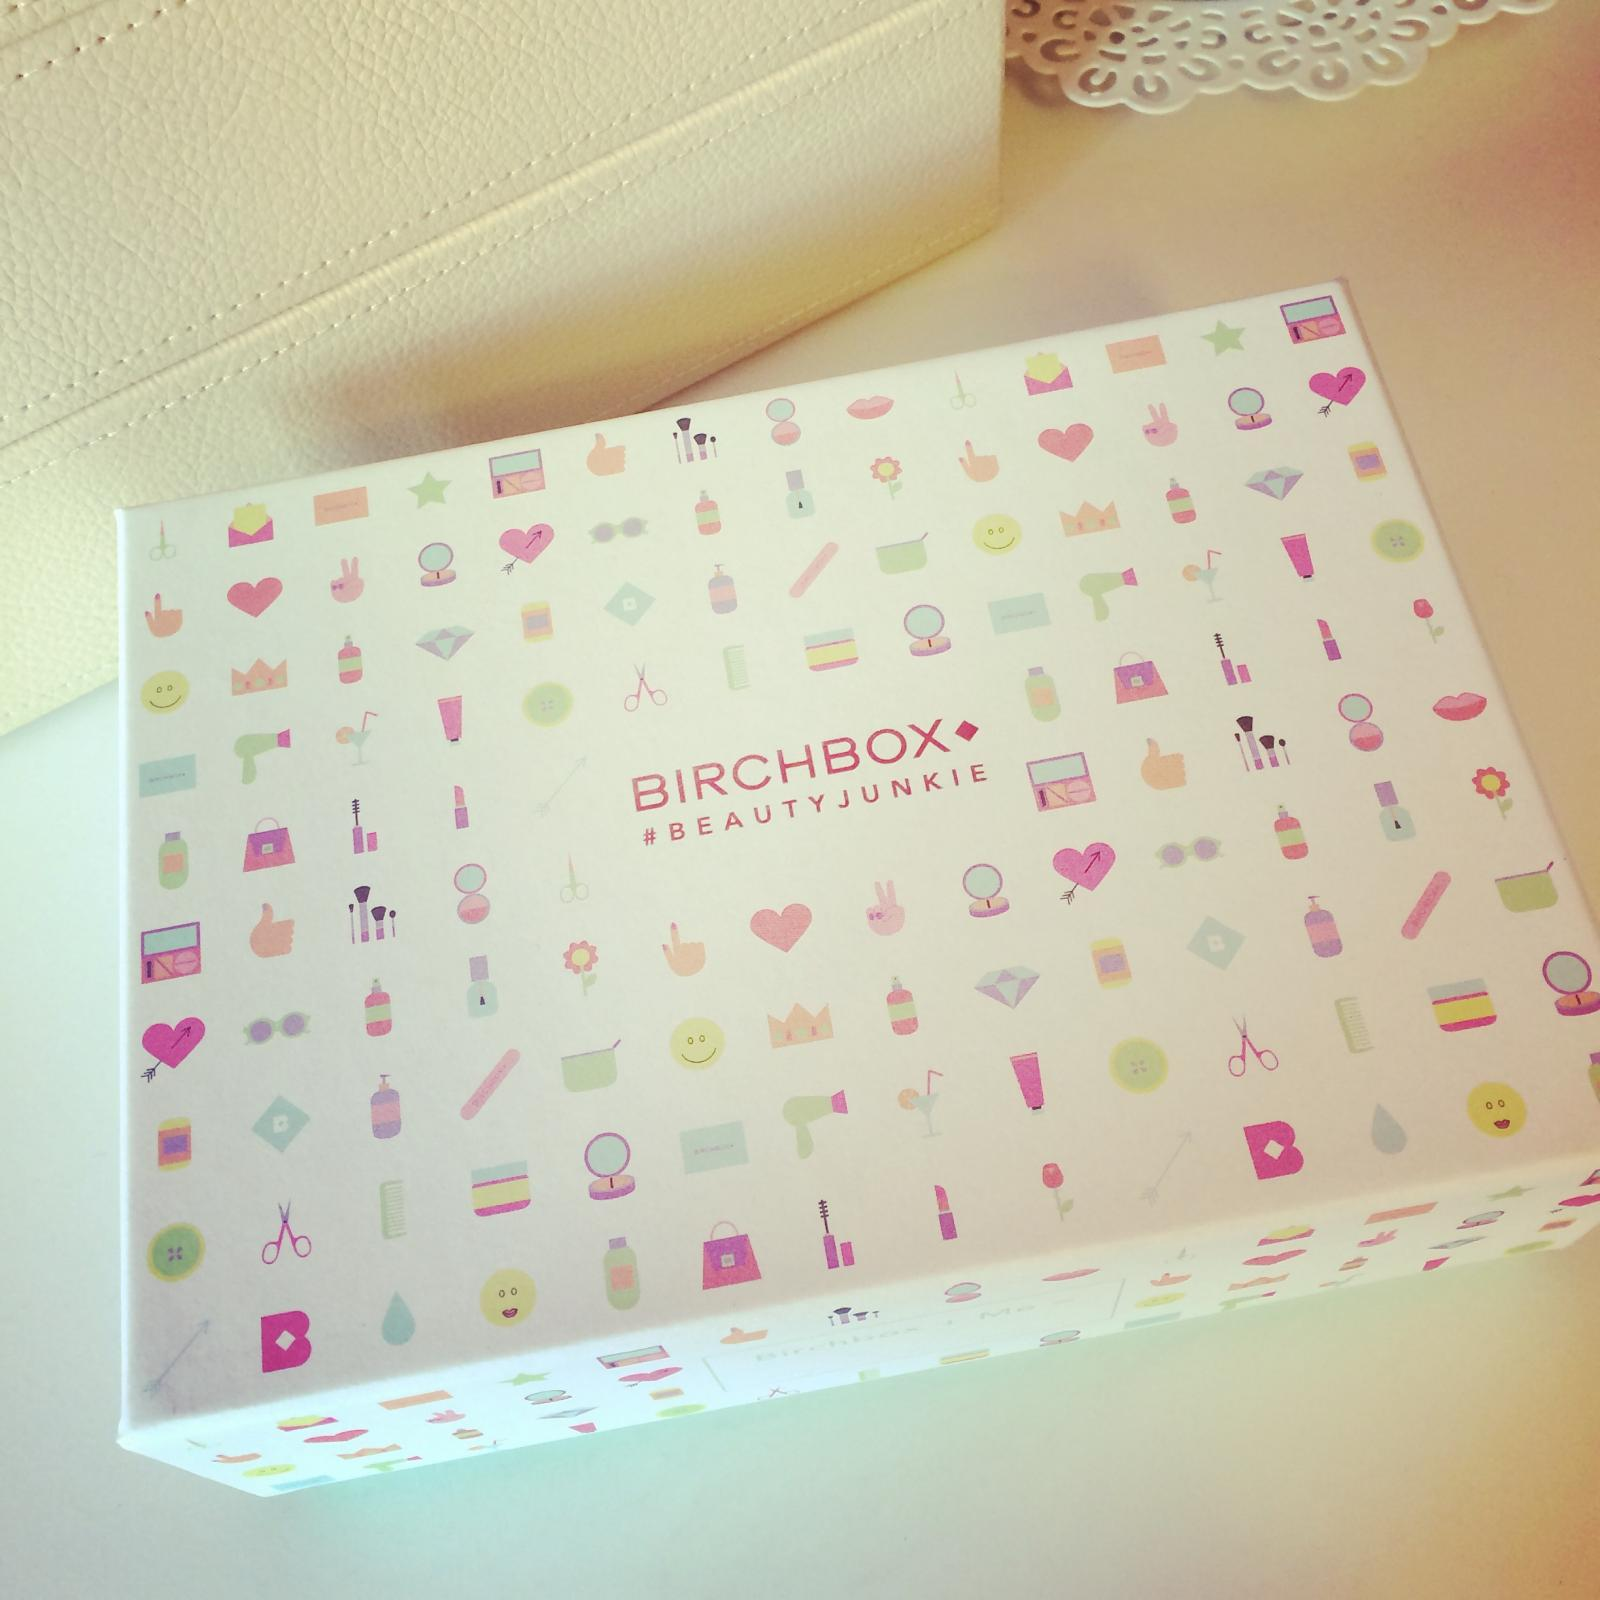 Birchbox August Edition – review